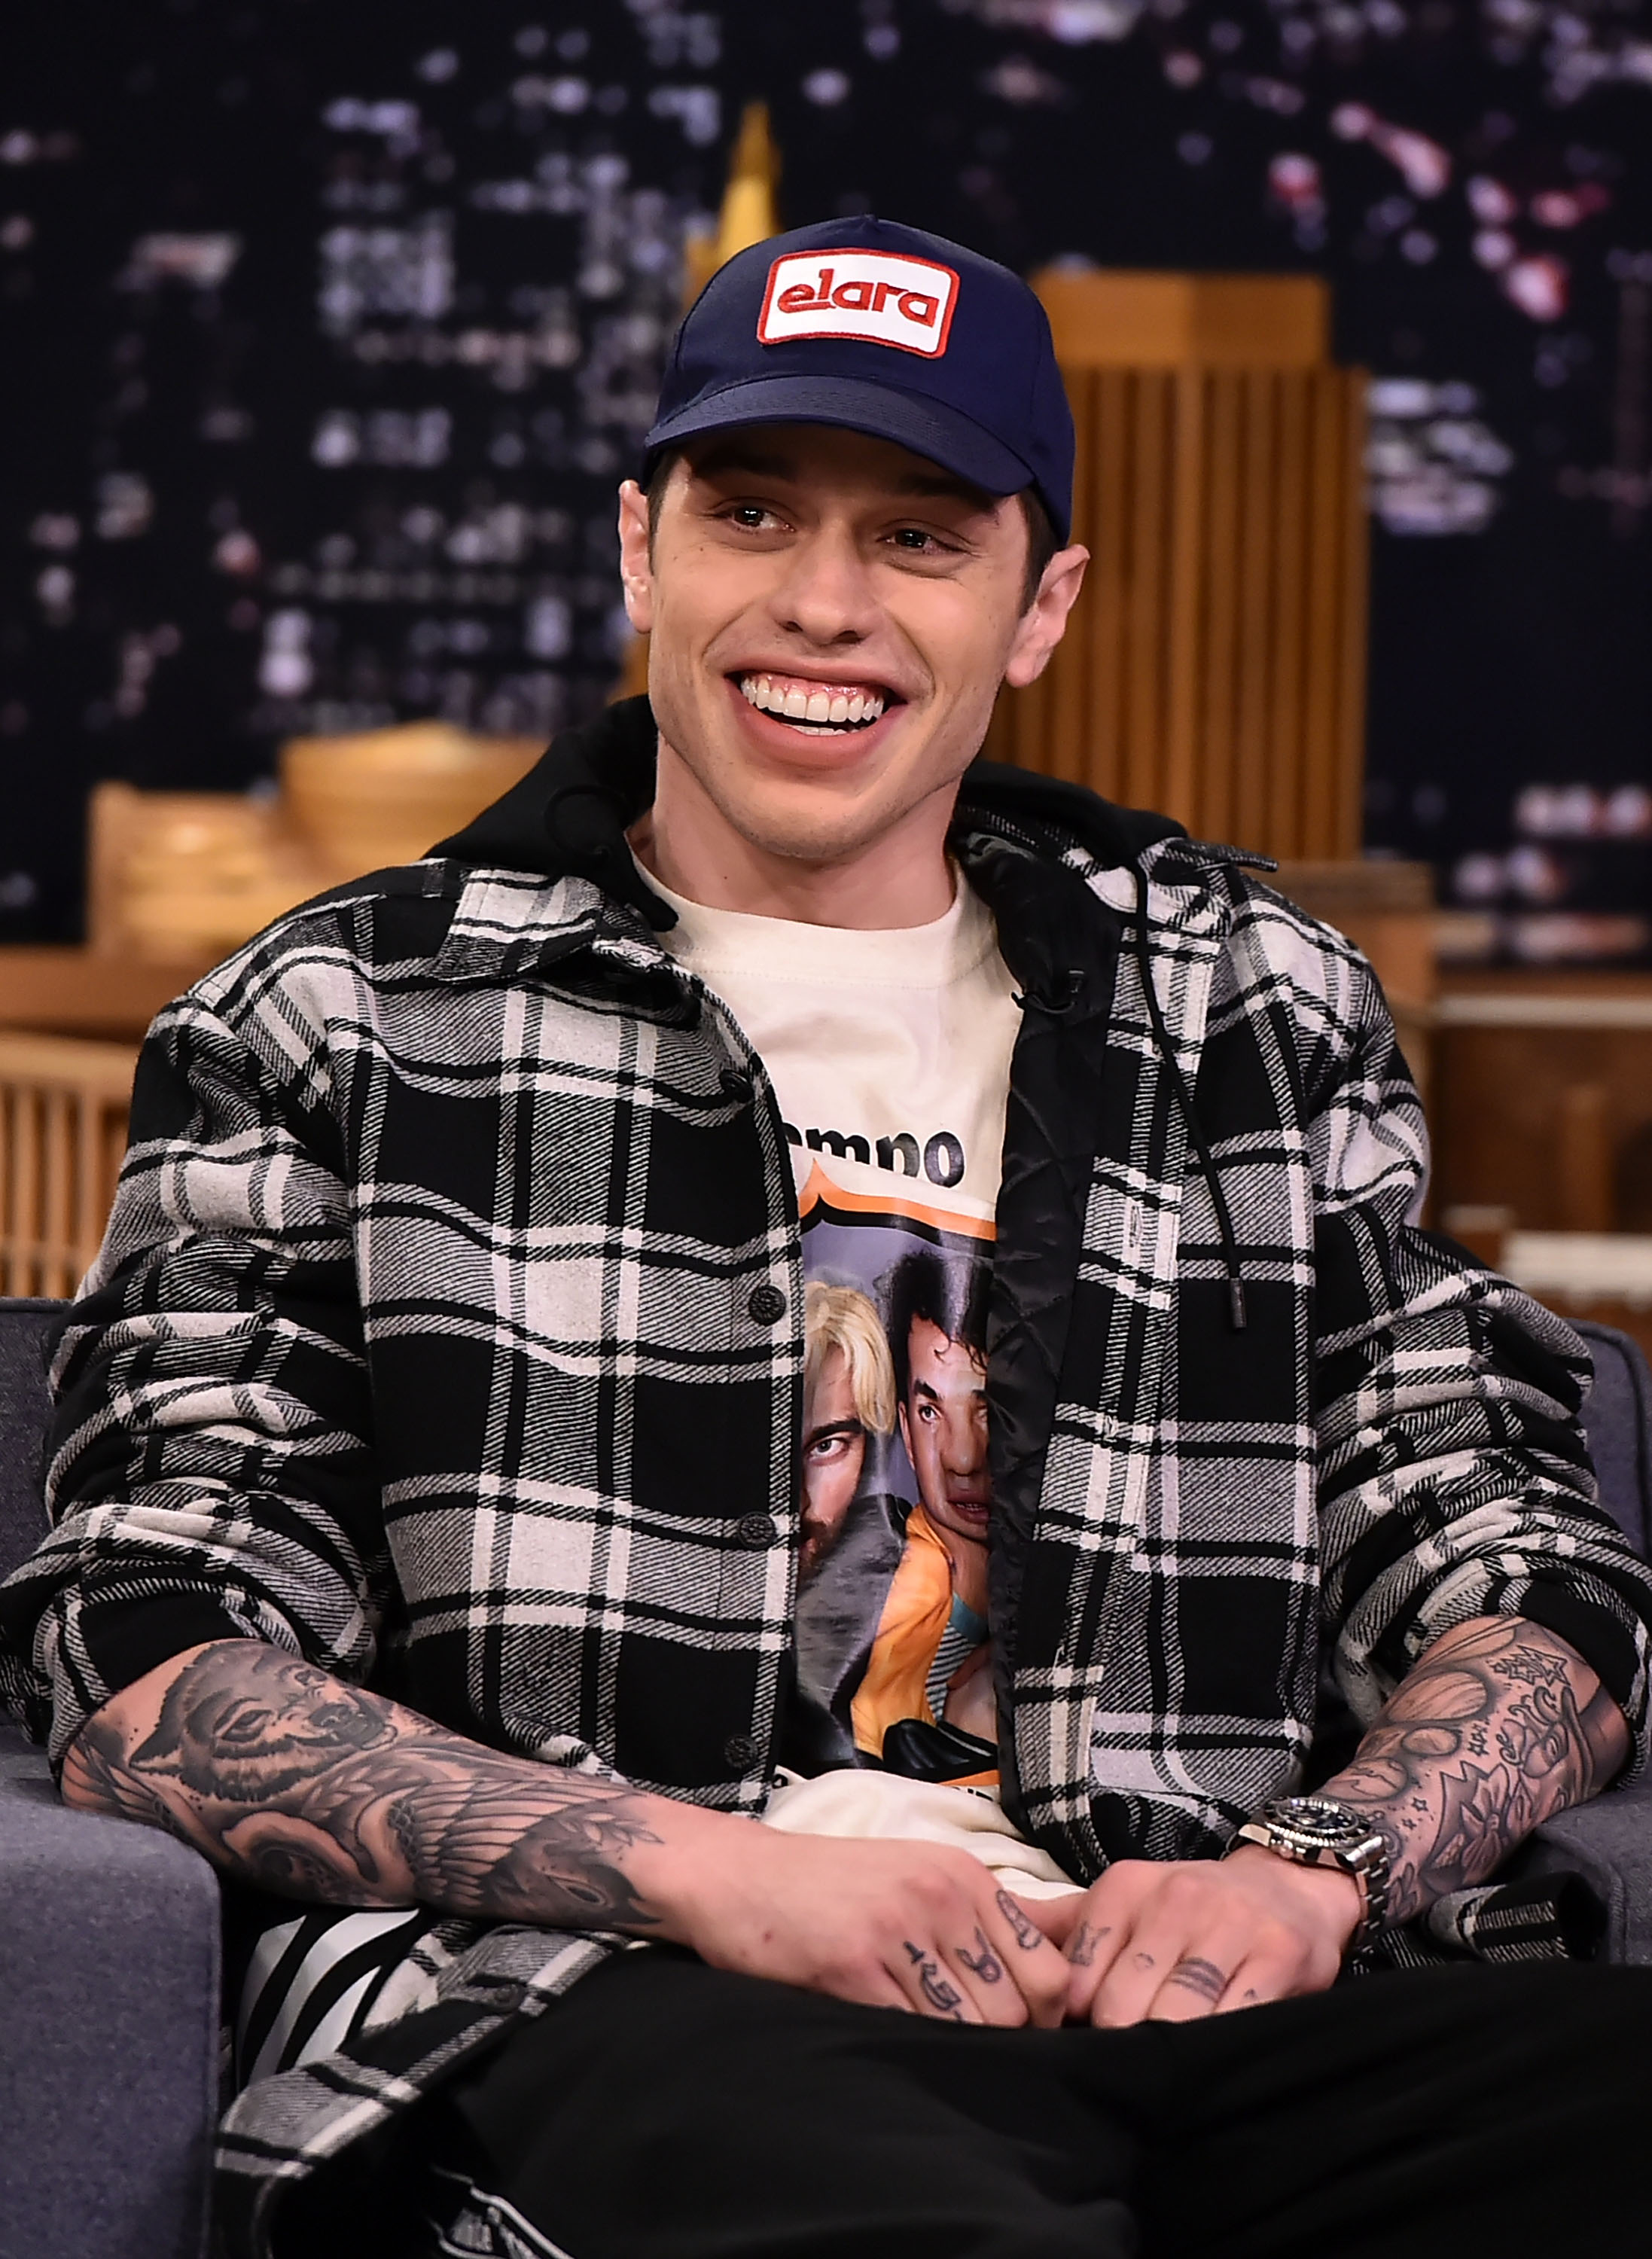 Pete Davidson Visits 'The Tonight Show Starring Jimmy Fallon' at Rockefeller Center on June 20, 2018 in New York City.